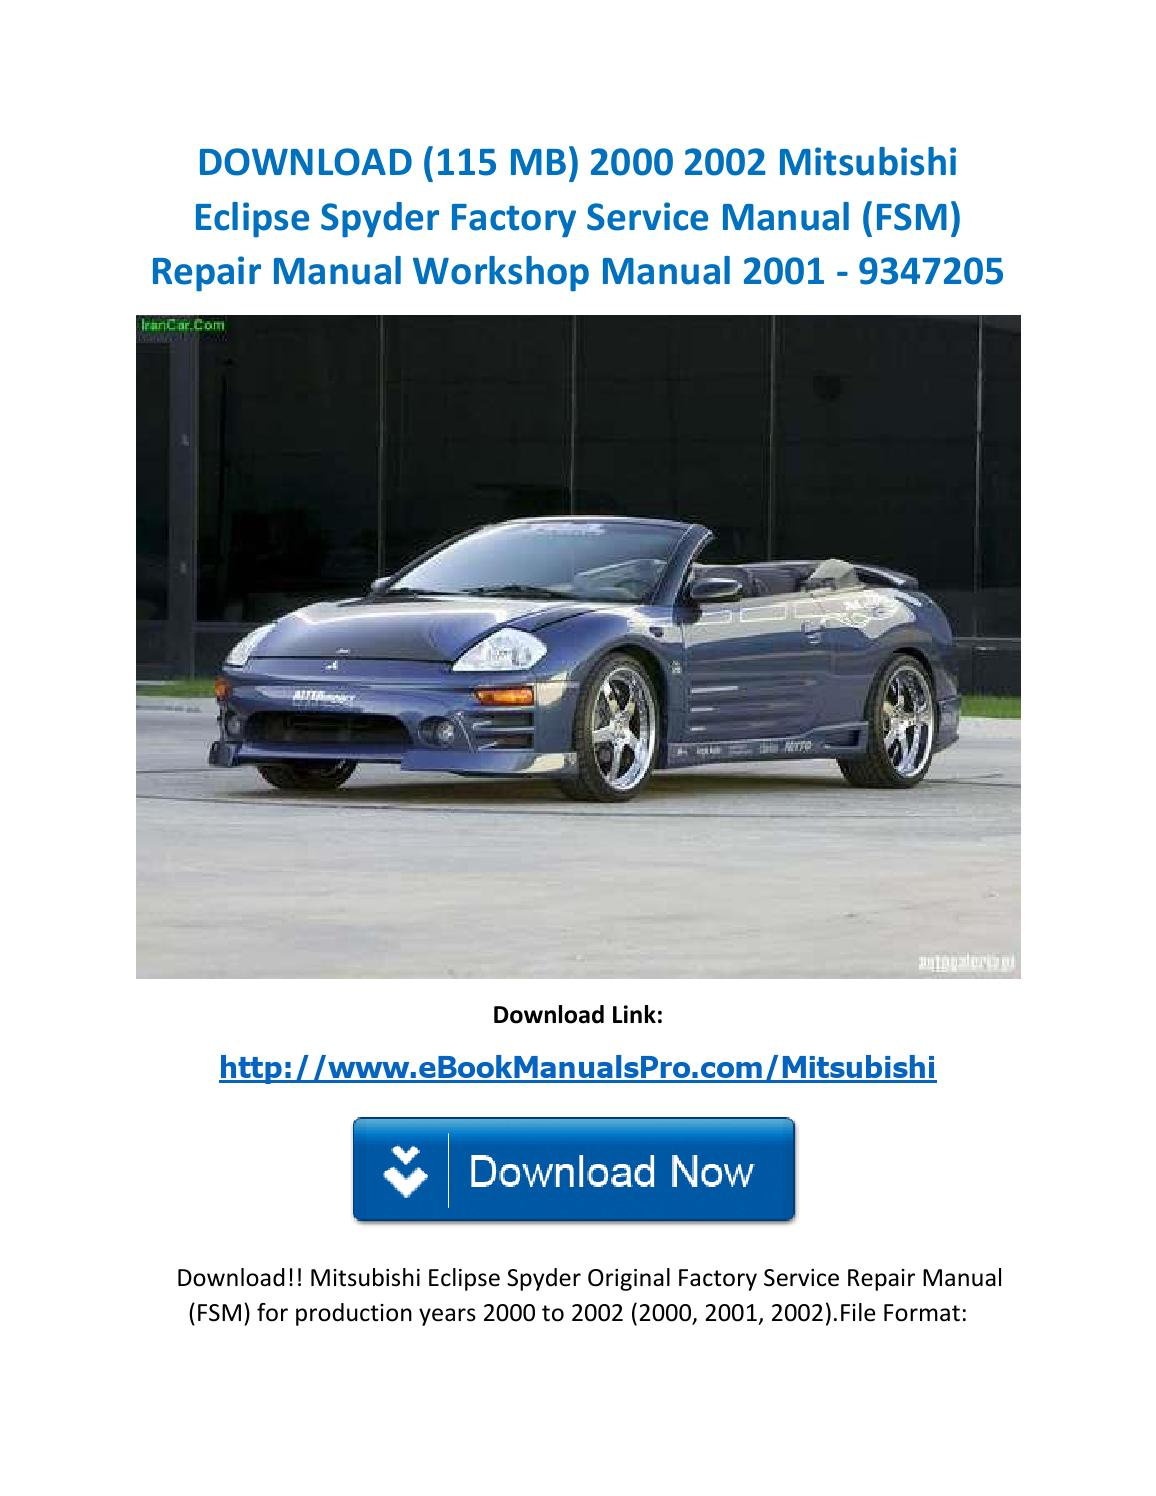 Download (115 mb) 2000 2002 mitsubishi eclipse spyder factory service manual  (fsm) repair manual wor by karl casino - issuu